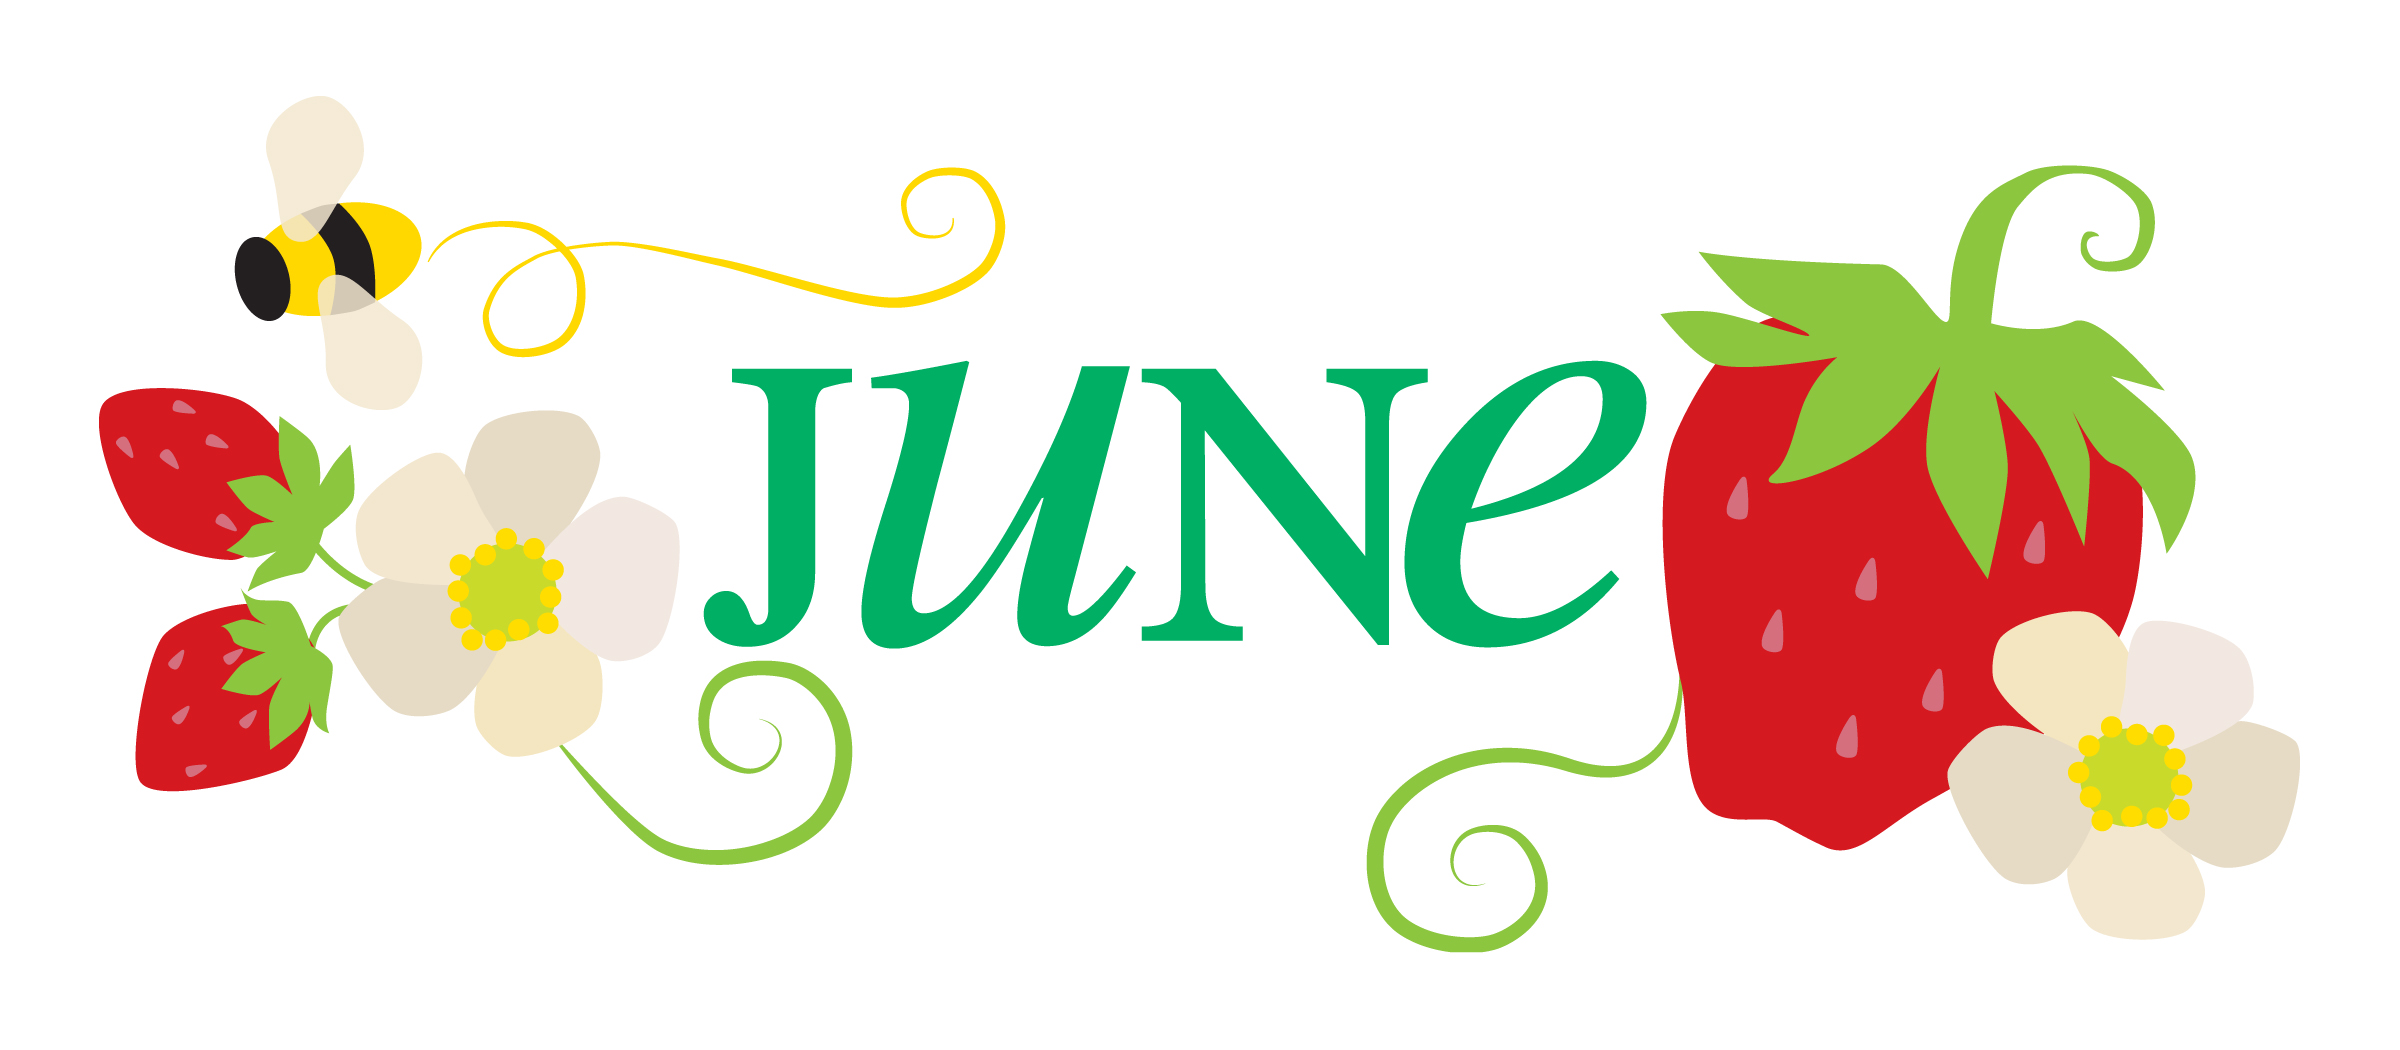 Check out the fun stuff that happened in June!